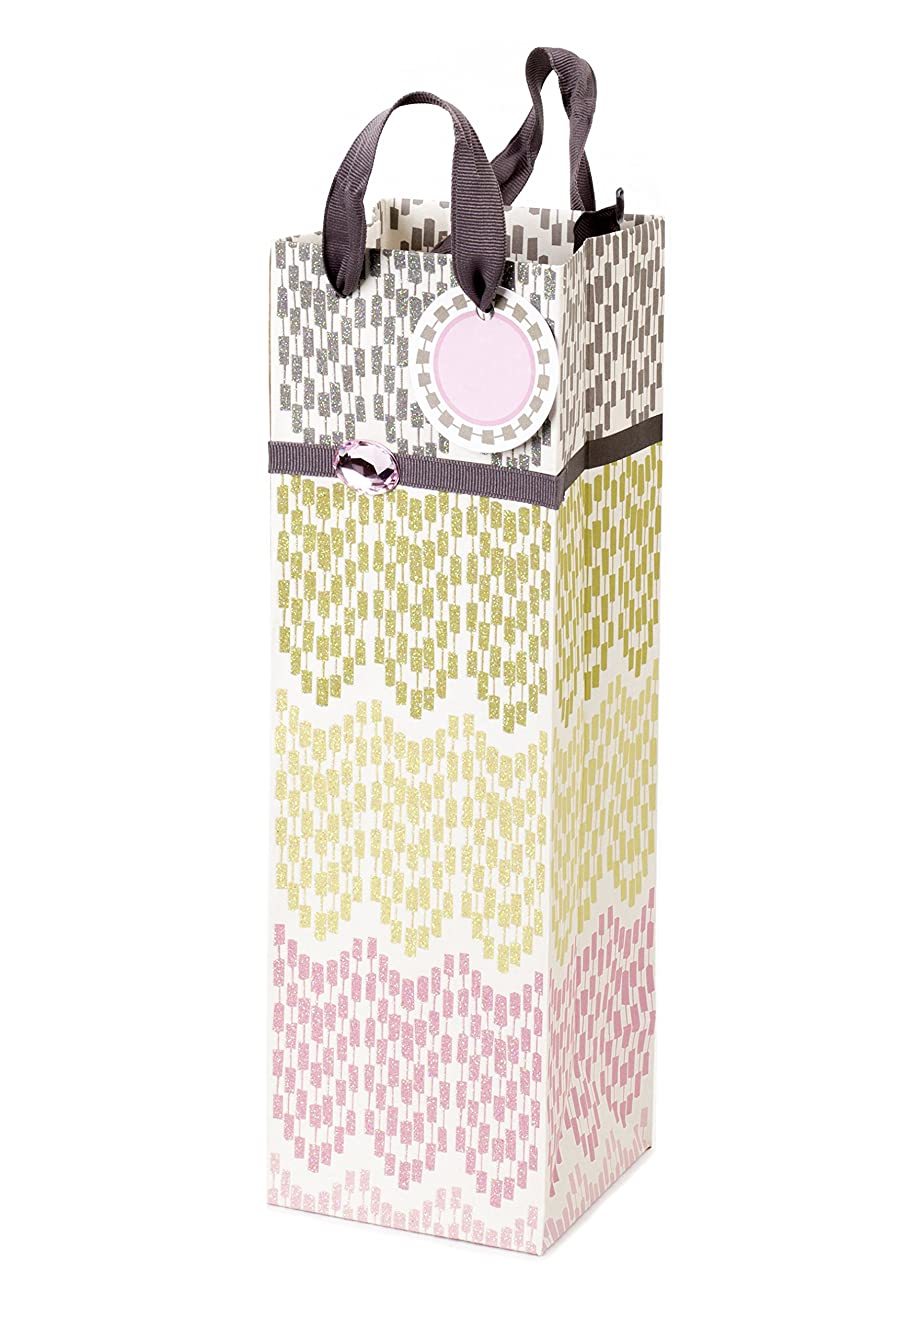 Hallmark Bottle Gift Bag for Wine, Olive Oil and More (Colorful Lace Pattern)